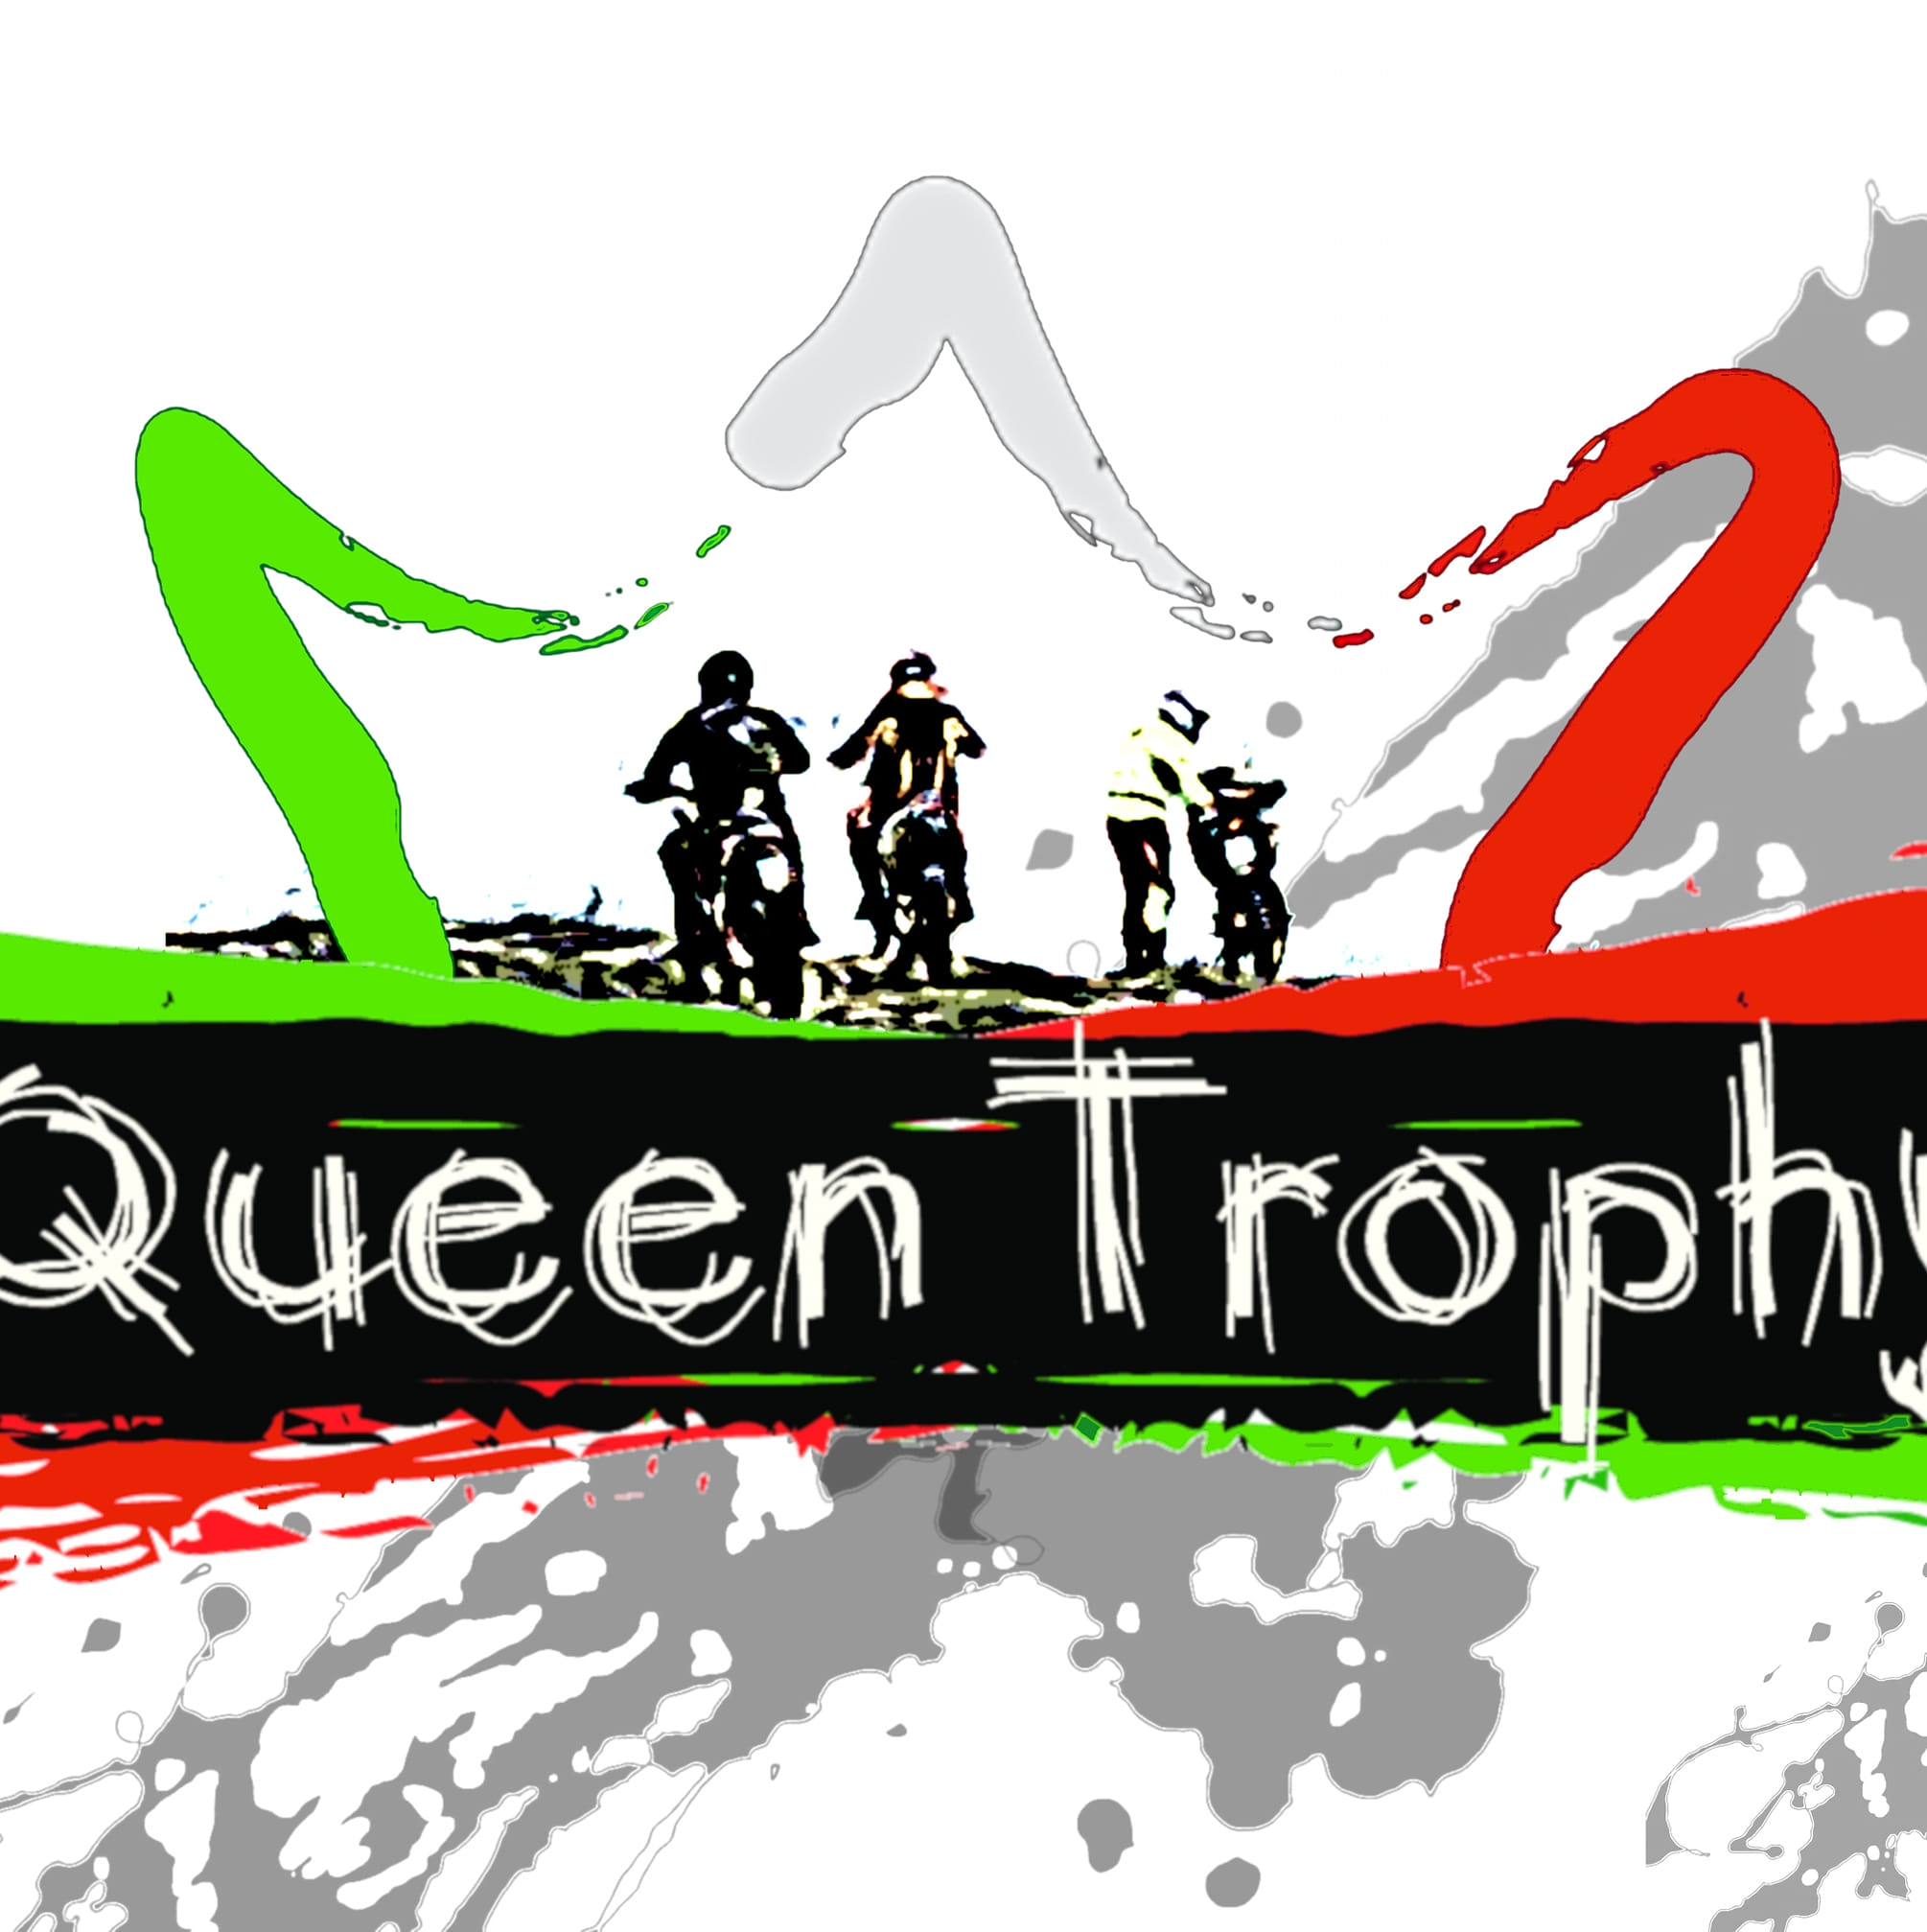 italiainpiega-evento-moto off road 2021-queen trophy